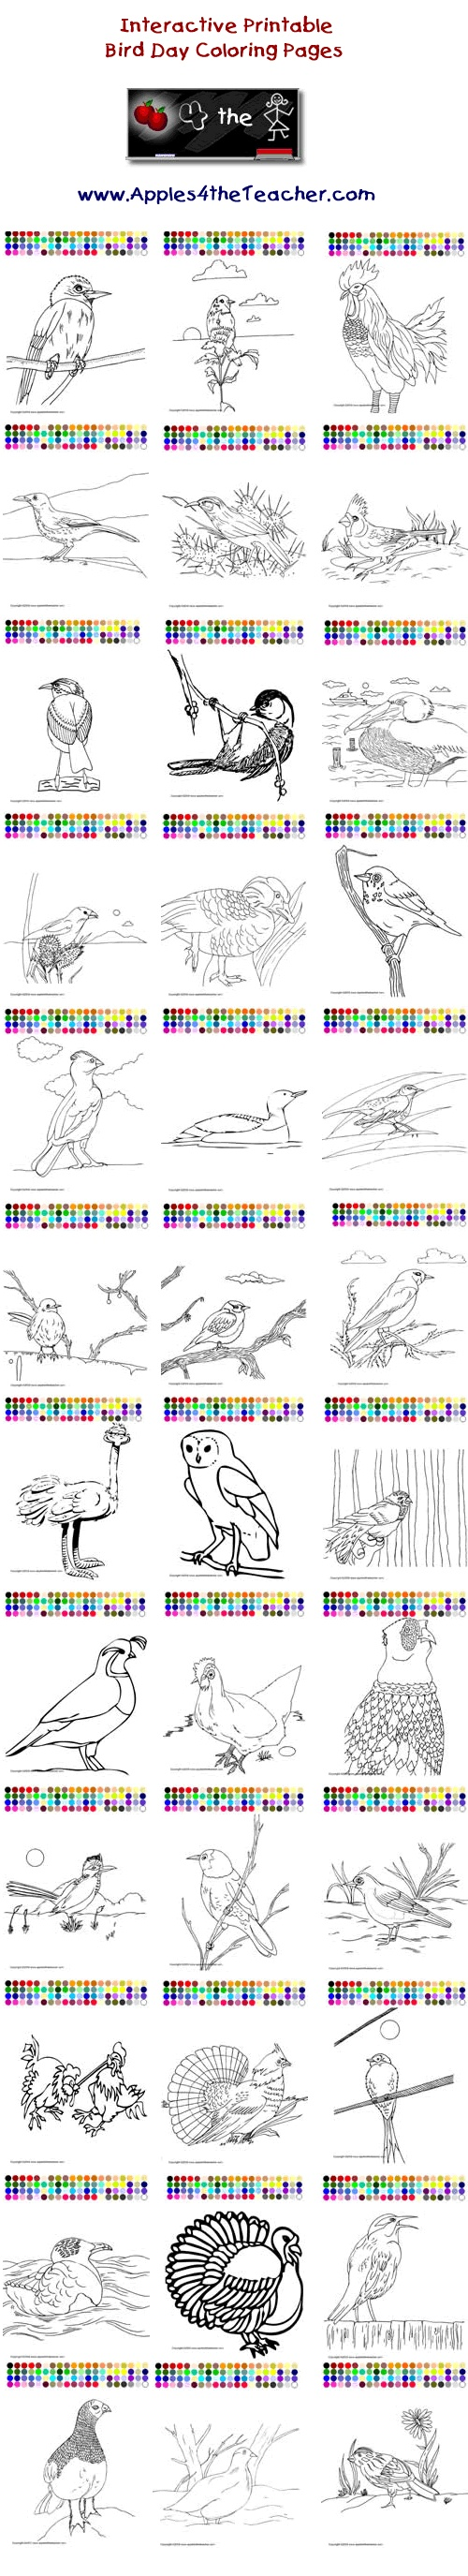 Printable interactive Bird Day coloring pages, Bird Day coloring pages for kids.